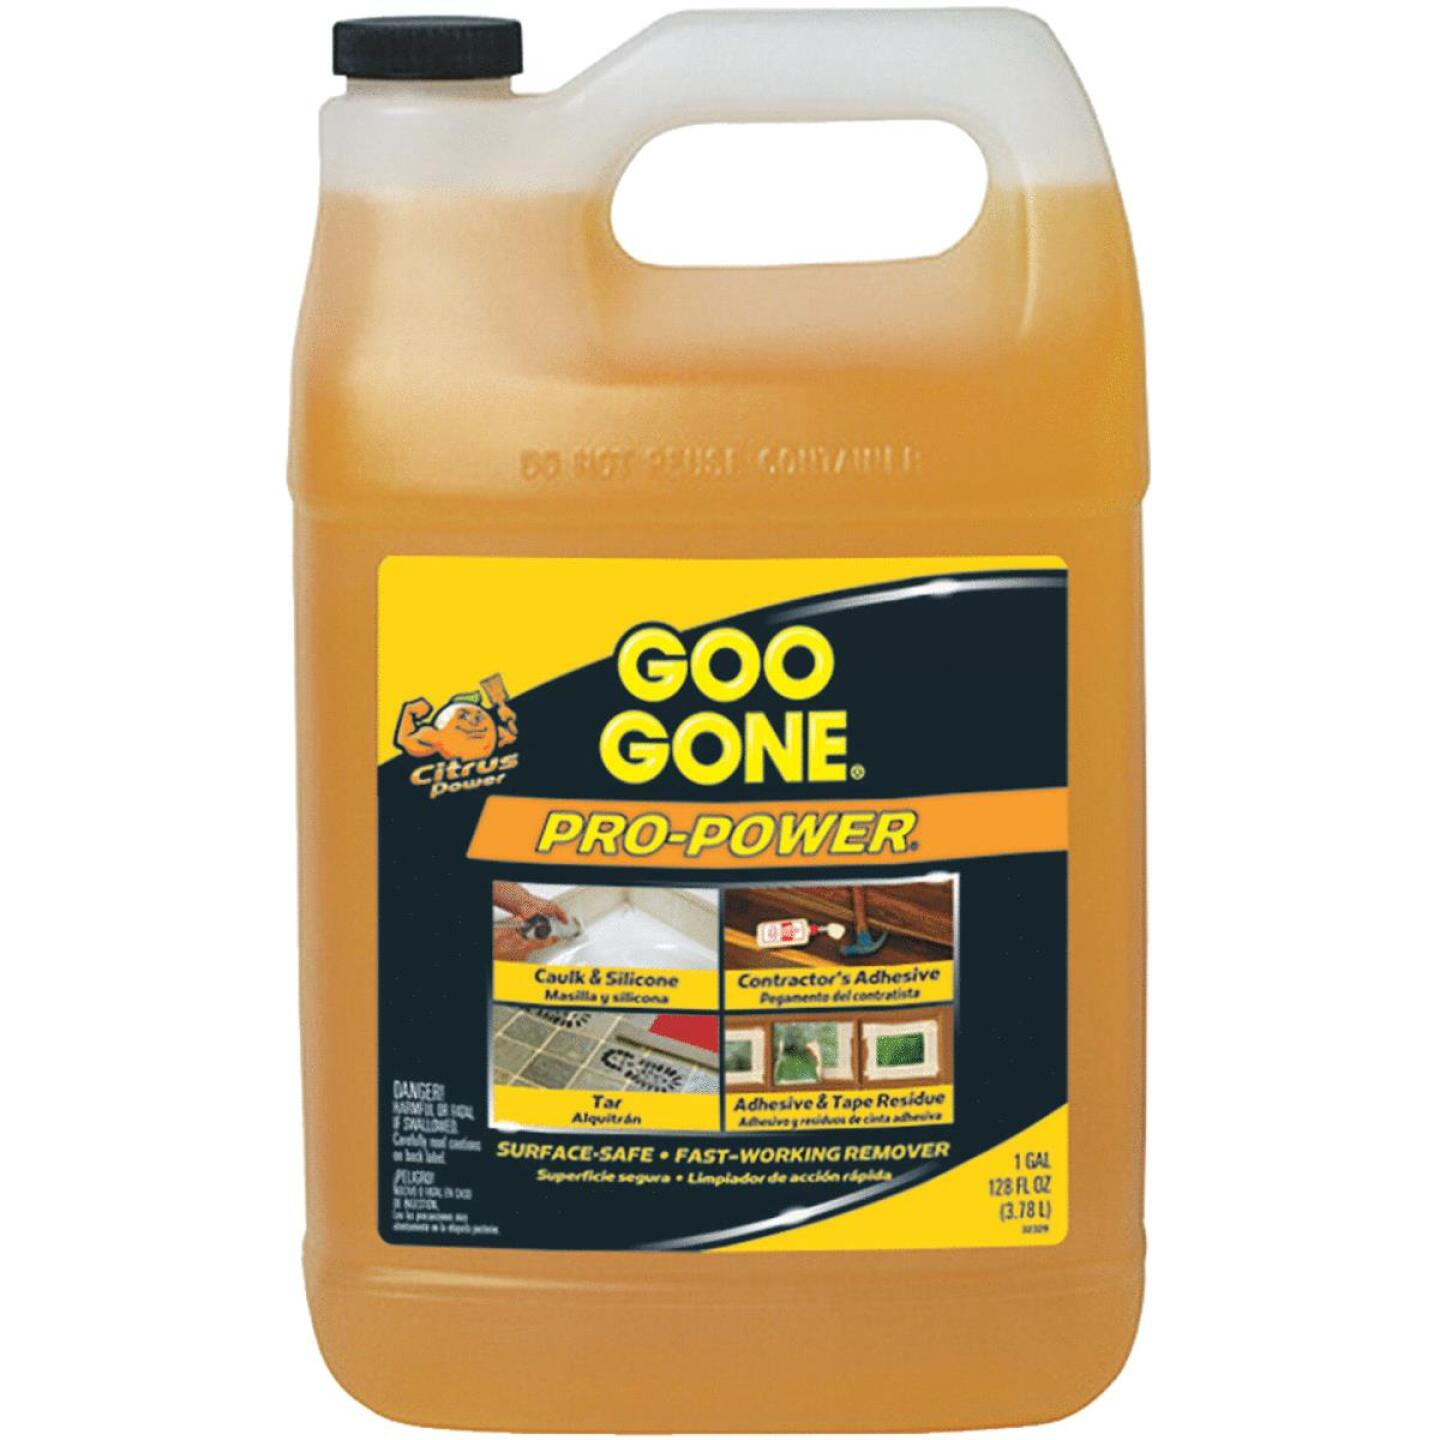 Goo Gone 1 Gal. Pro-Power Adhesive Remover Image 64